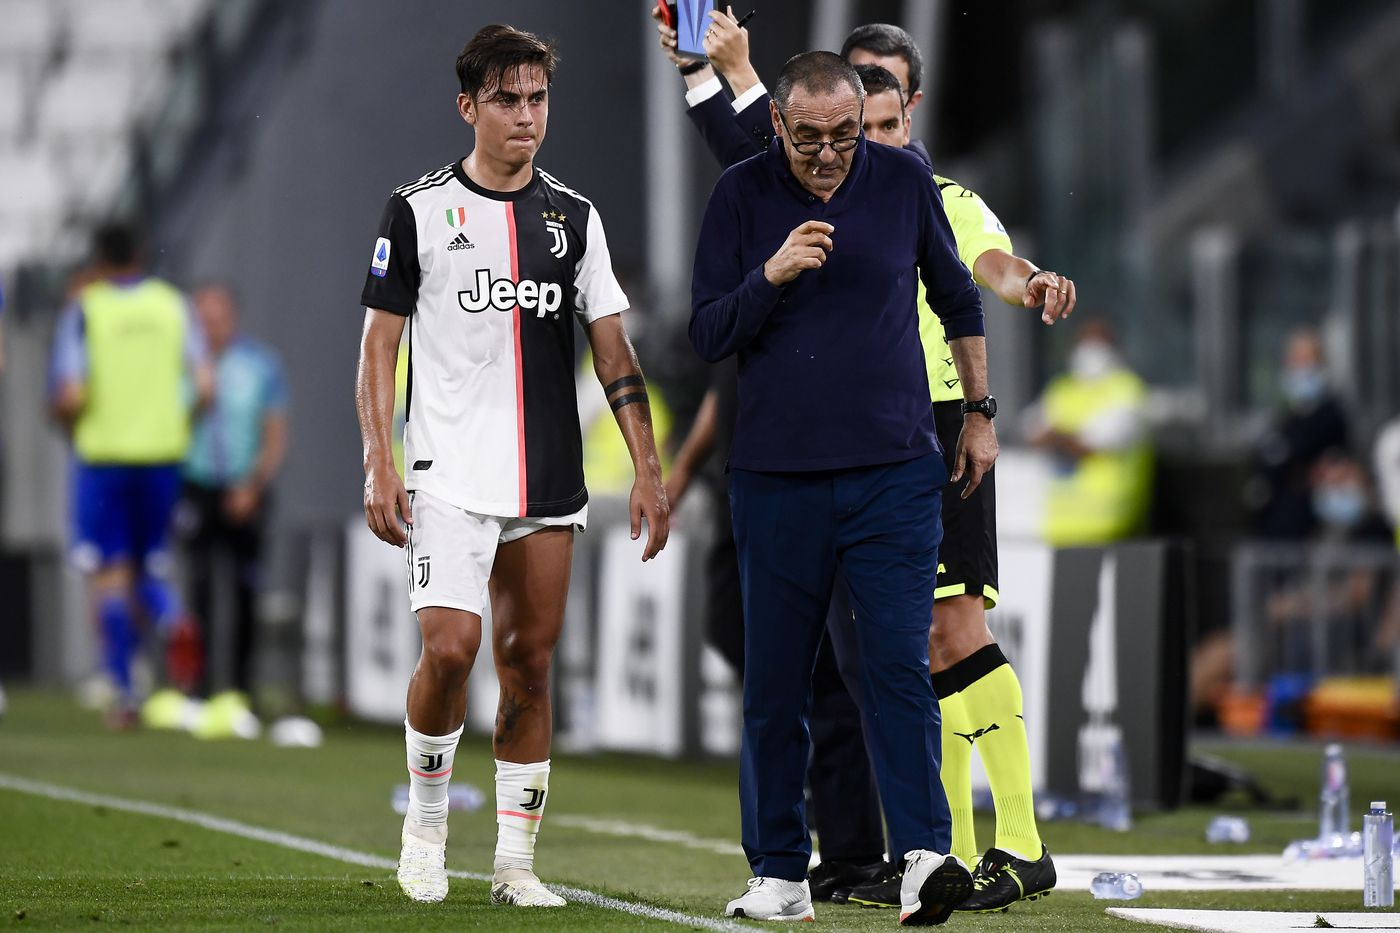 Paulo Dybala listed as 'day to day' after thigh injury diagnosis ...